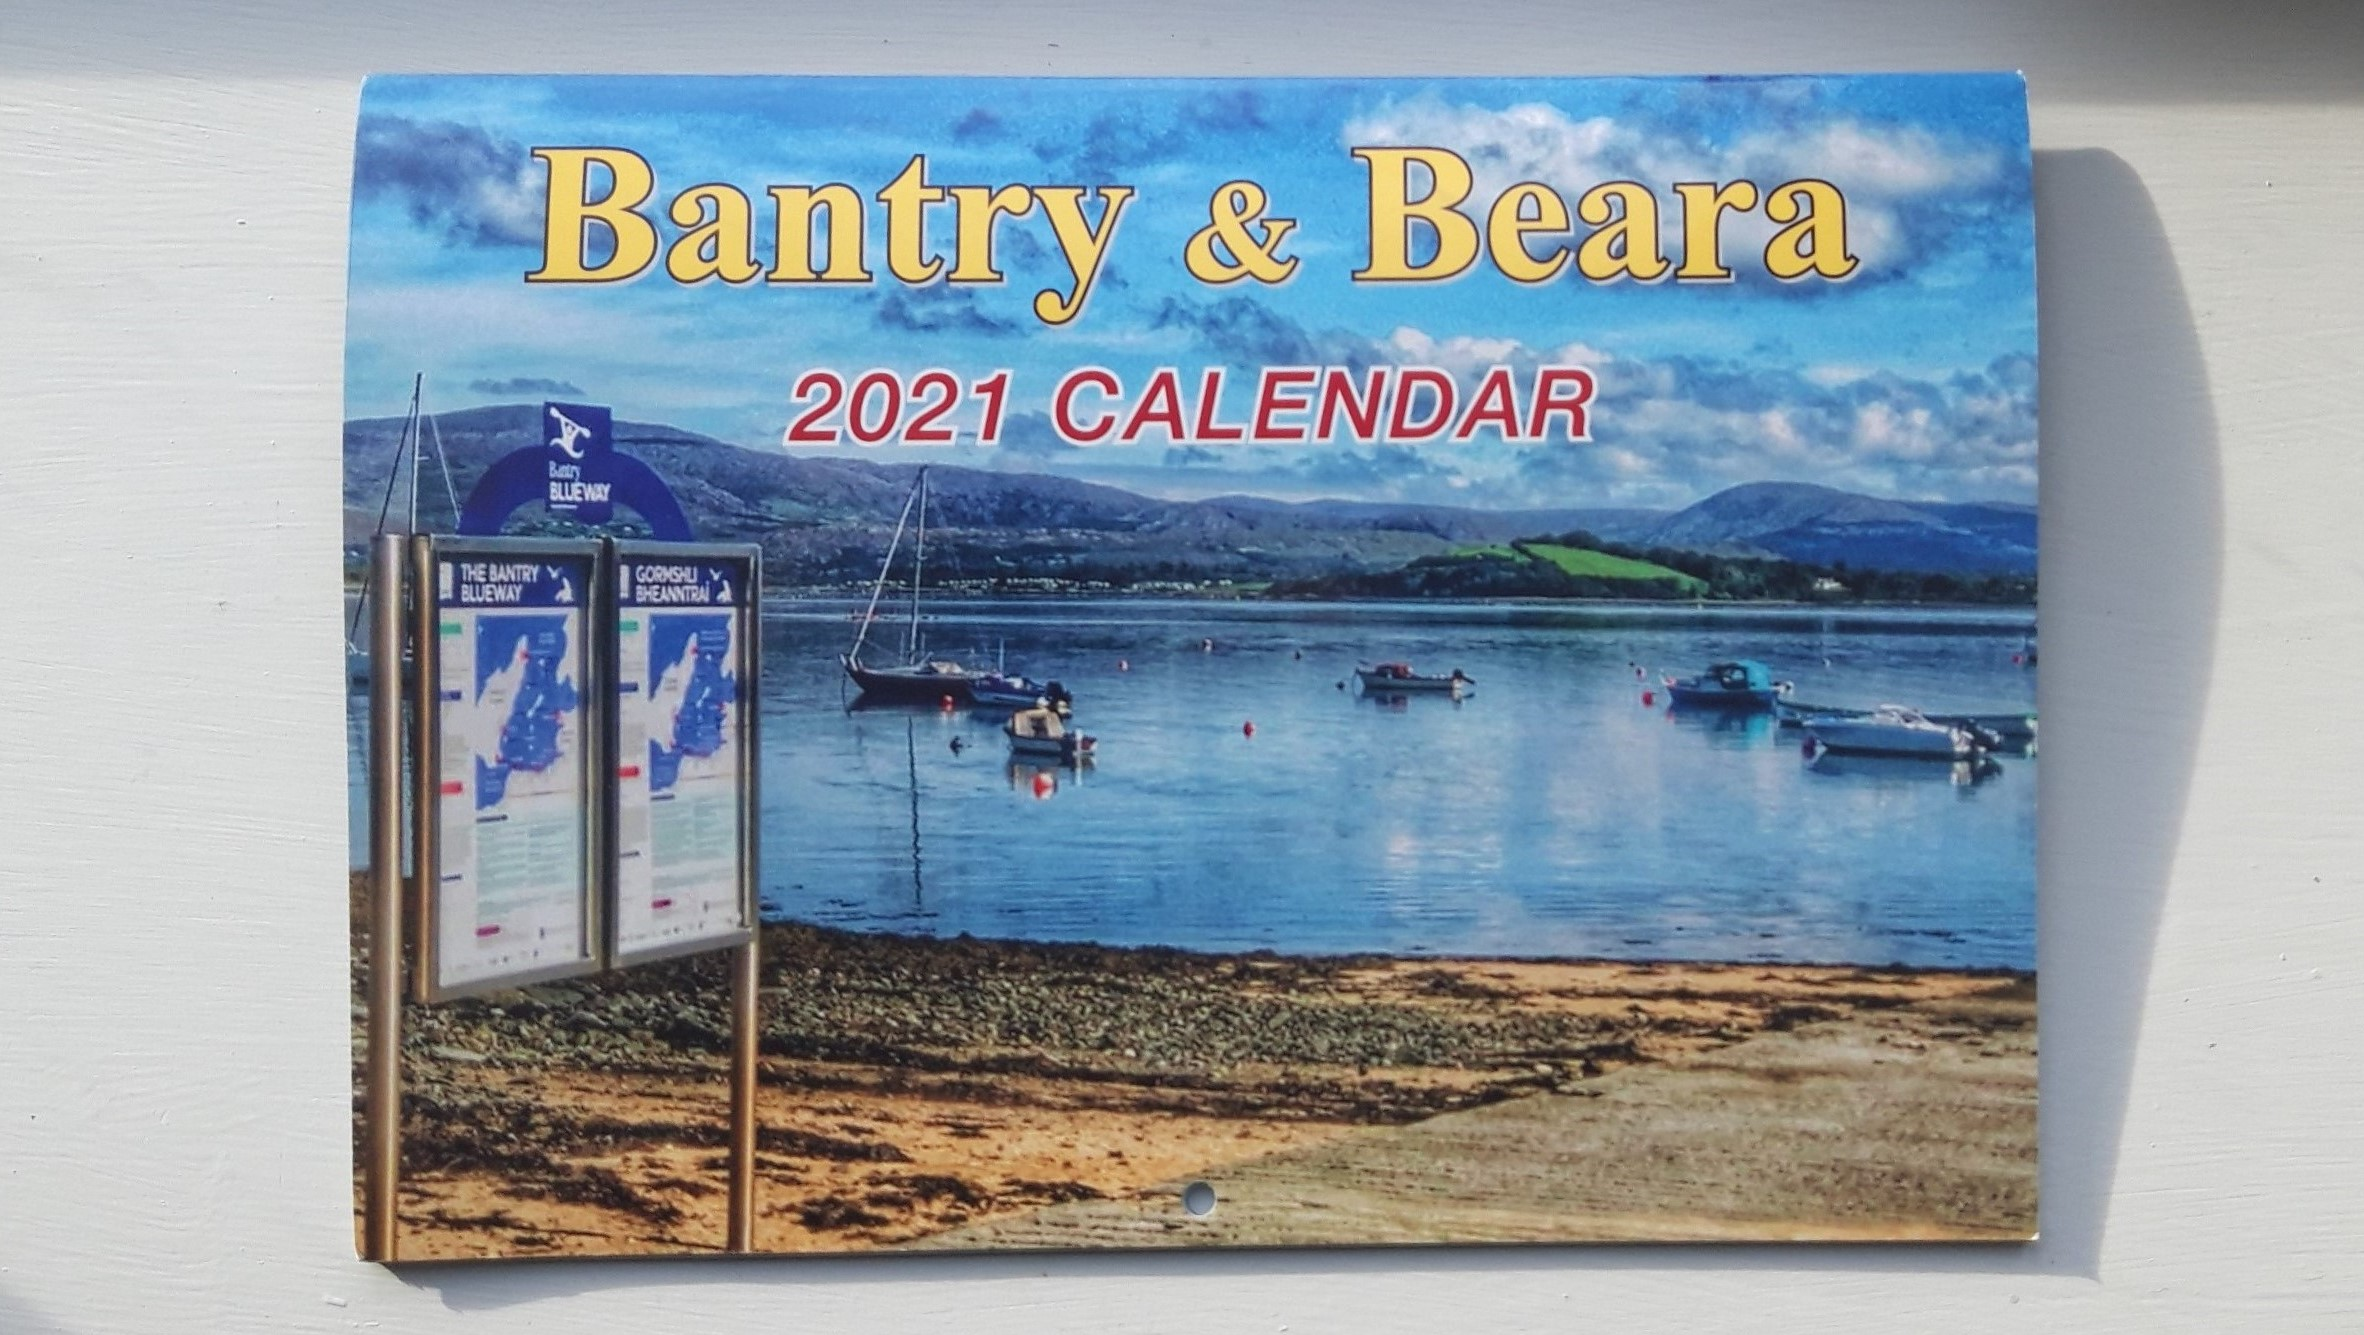 Bantry & Beara Calendar 2021